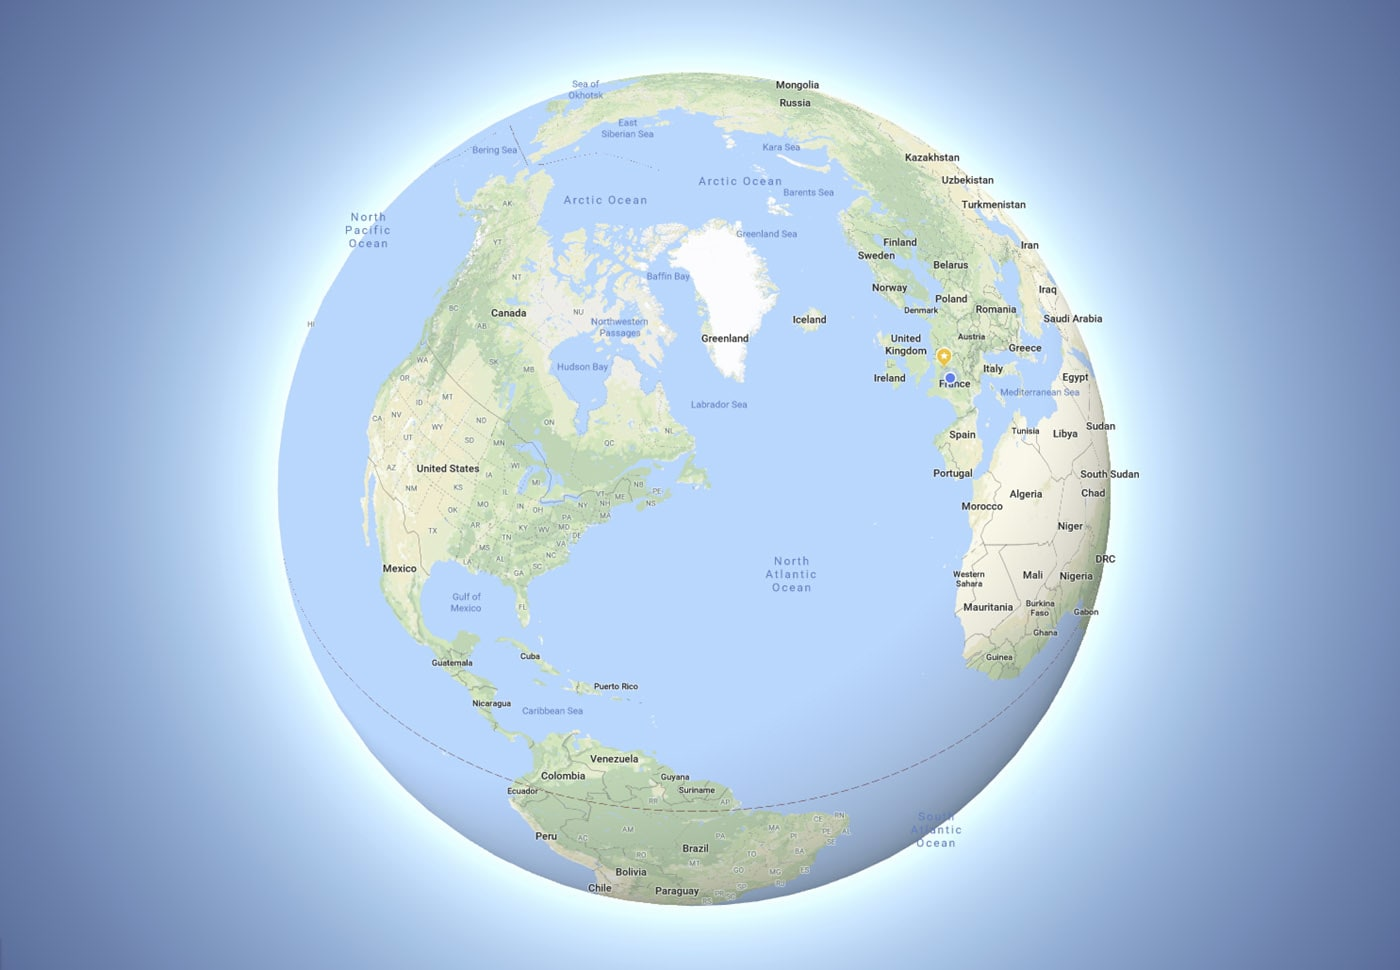 Google Maps now zooms out to a globe instead of a flat Earth on aerial maps, search maps, google search, goolge maps, satellite map images with missing or unclear data, ipad maps, amazon fire phone maps, google sky, google moon, road map usa states maps, google mars, googlr maps, msn maps, google voice, google docs, gppgle maps, web mapping, google map maker, googie maps, aeronautical maps, gogole maps, iphone maps, google translate, microsoft maps, google goggles, bing maps, online maps, google chrome, yahoo! maps, stanford university maps, route planning software, topographic maps, waze maps, android maps,